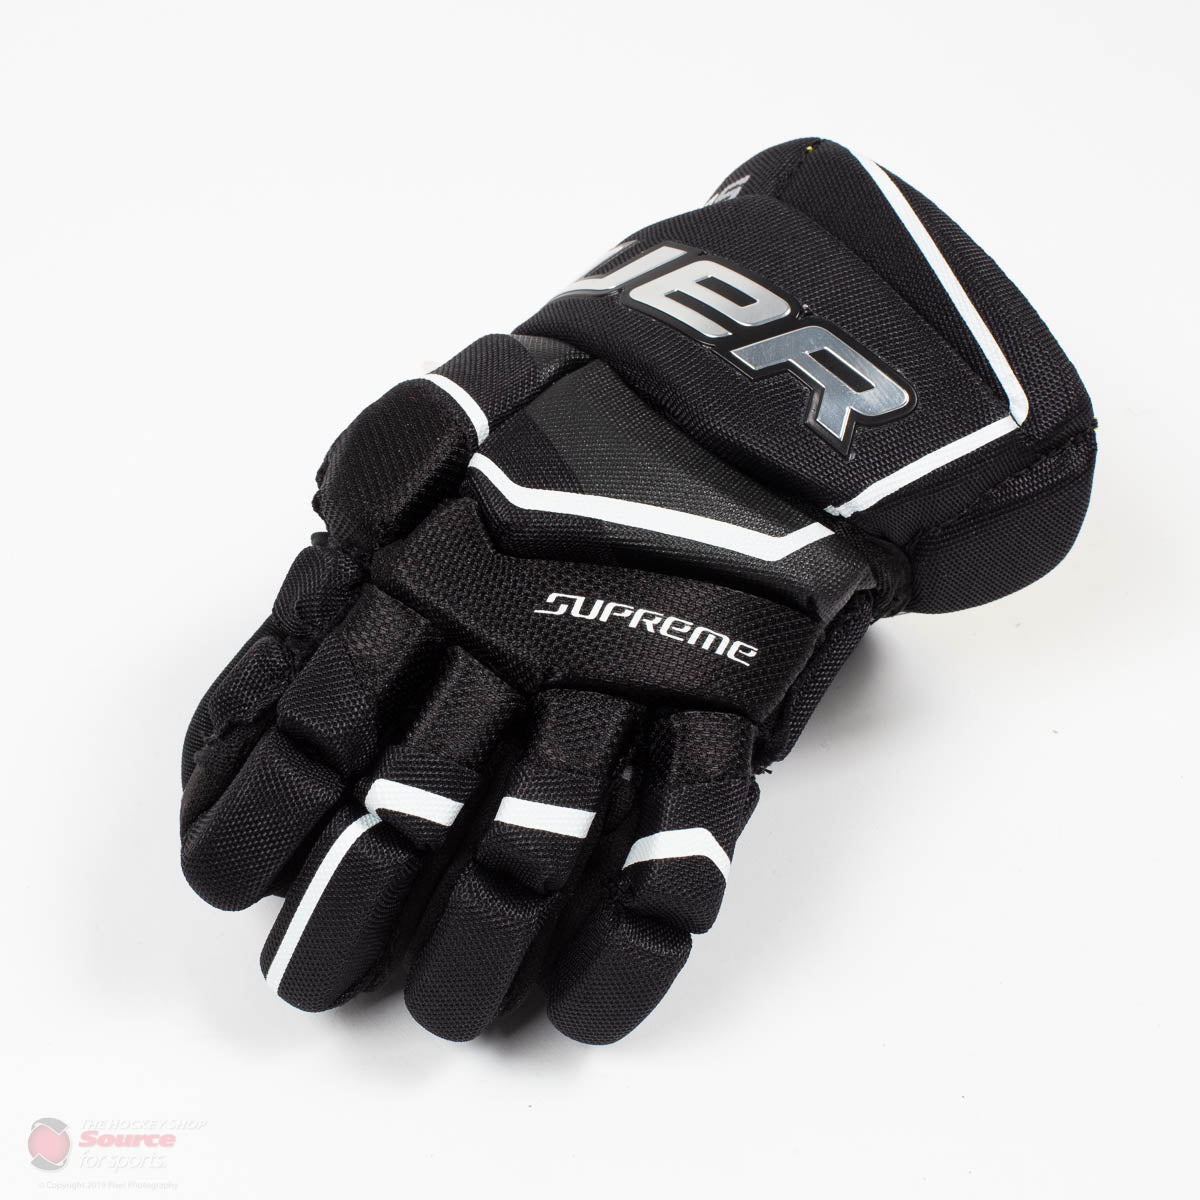 Bauer Supreme 2S Pro Youth Hockey Gloves